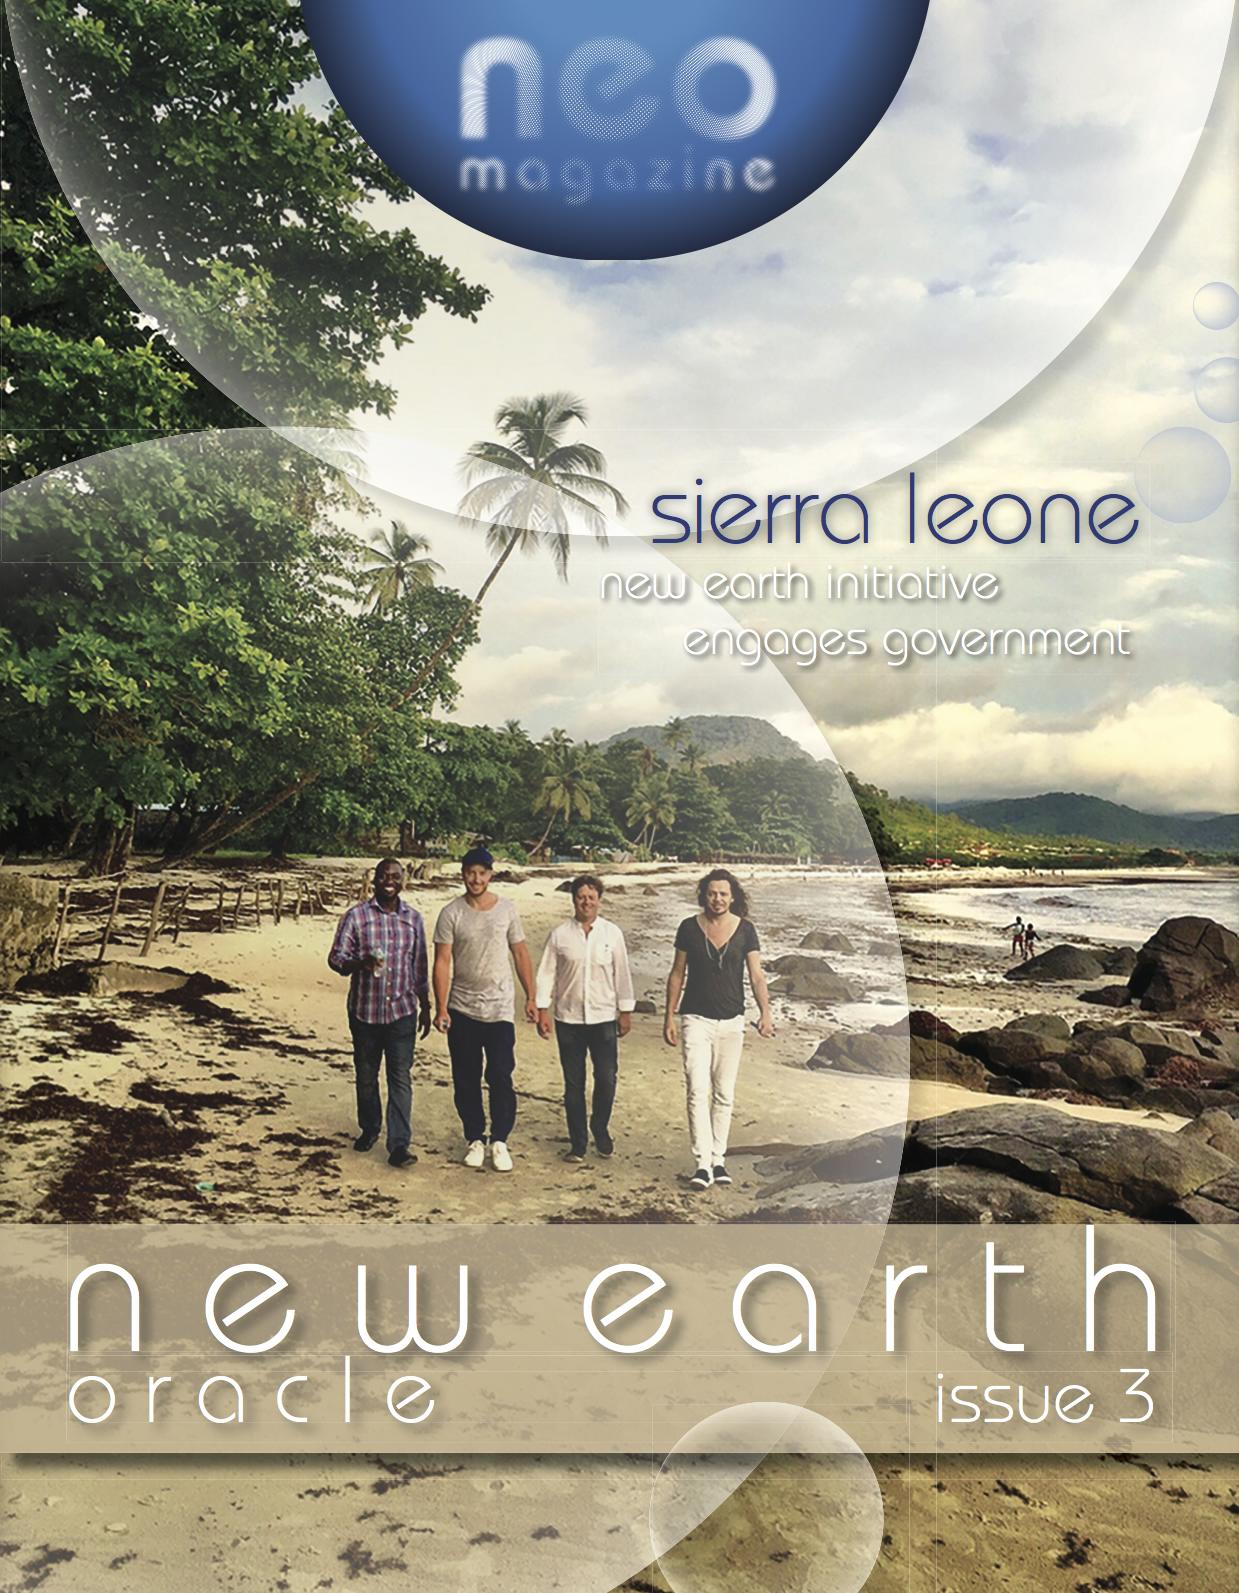 new earth oracle (neo) magazine issue # 3